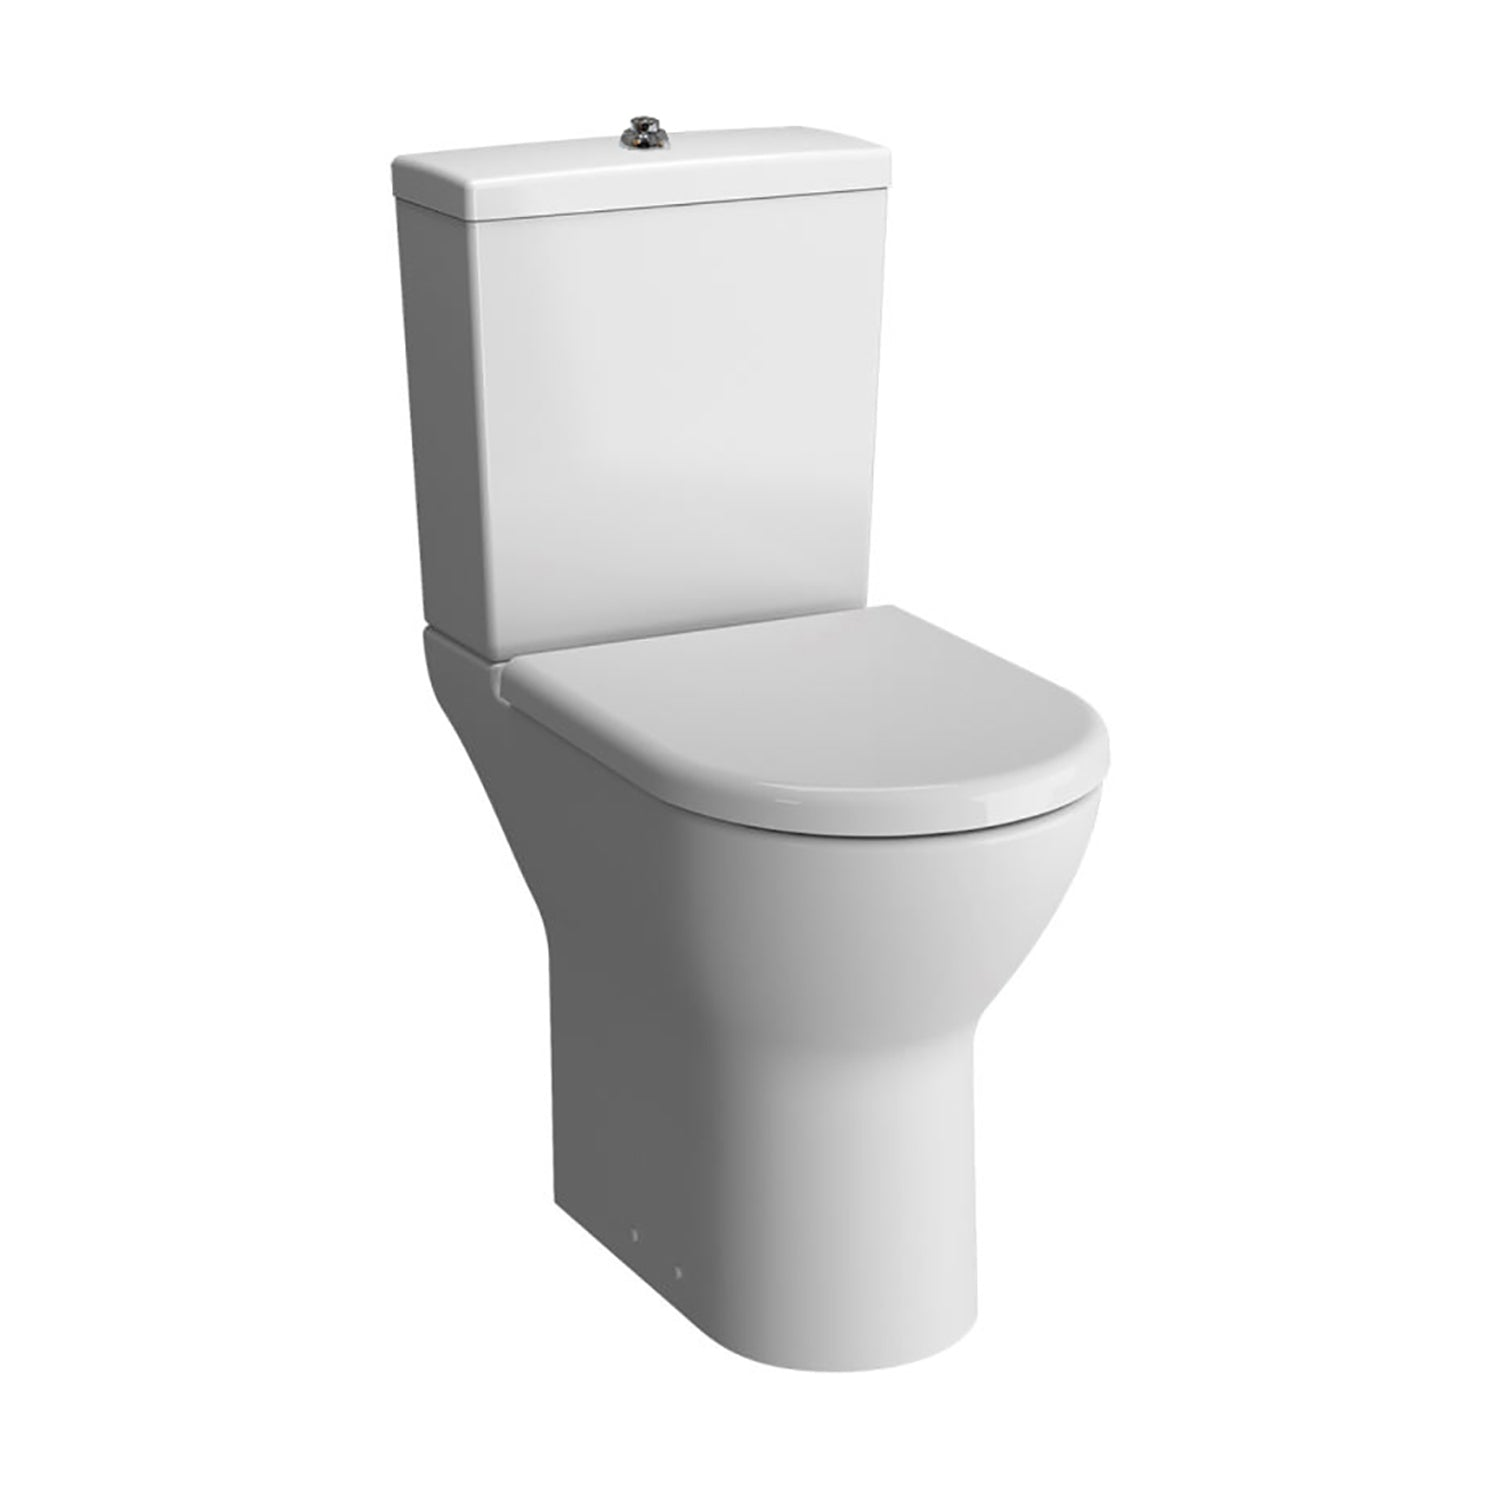 Vesta Comfort Height Close Coupled Toilet with the seat and cover on a white background